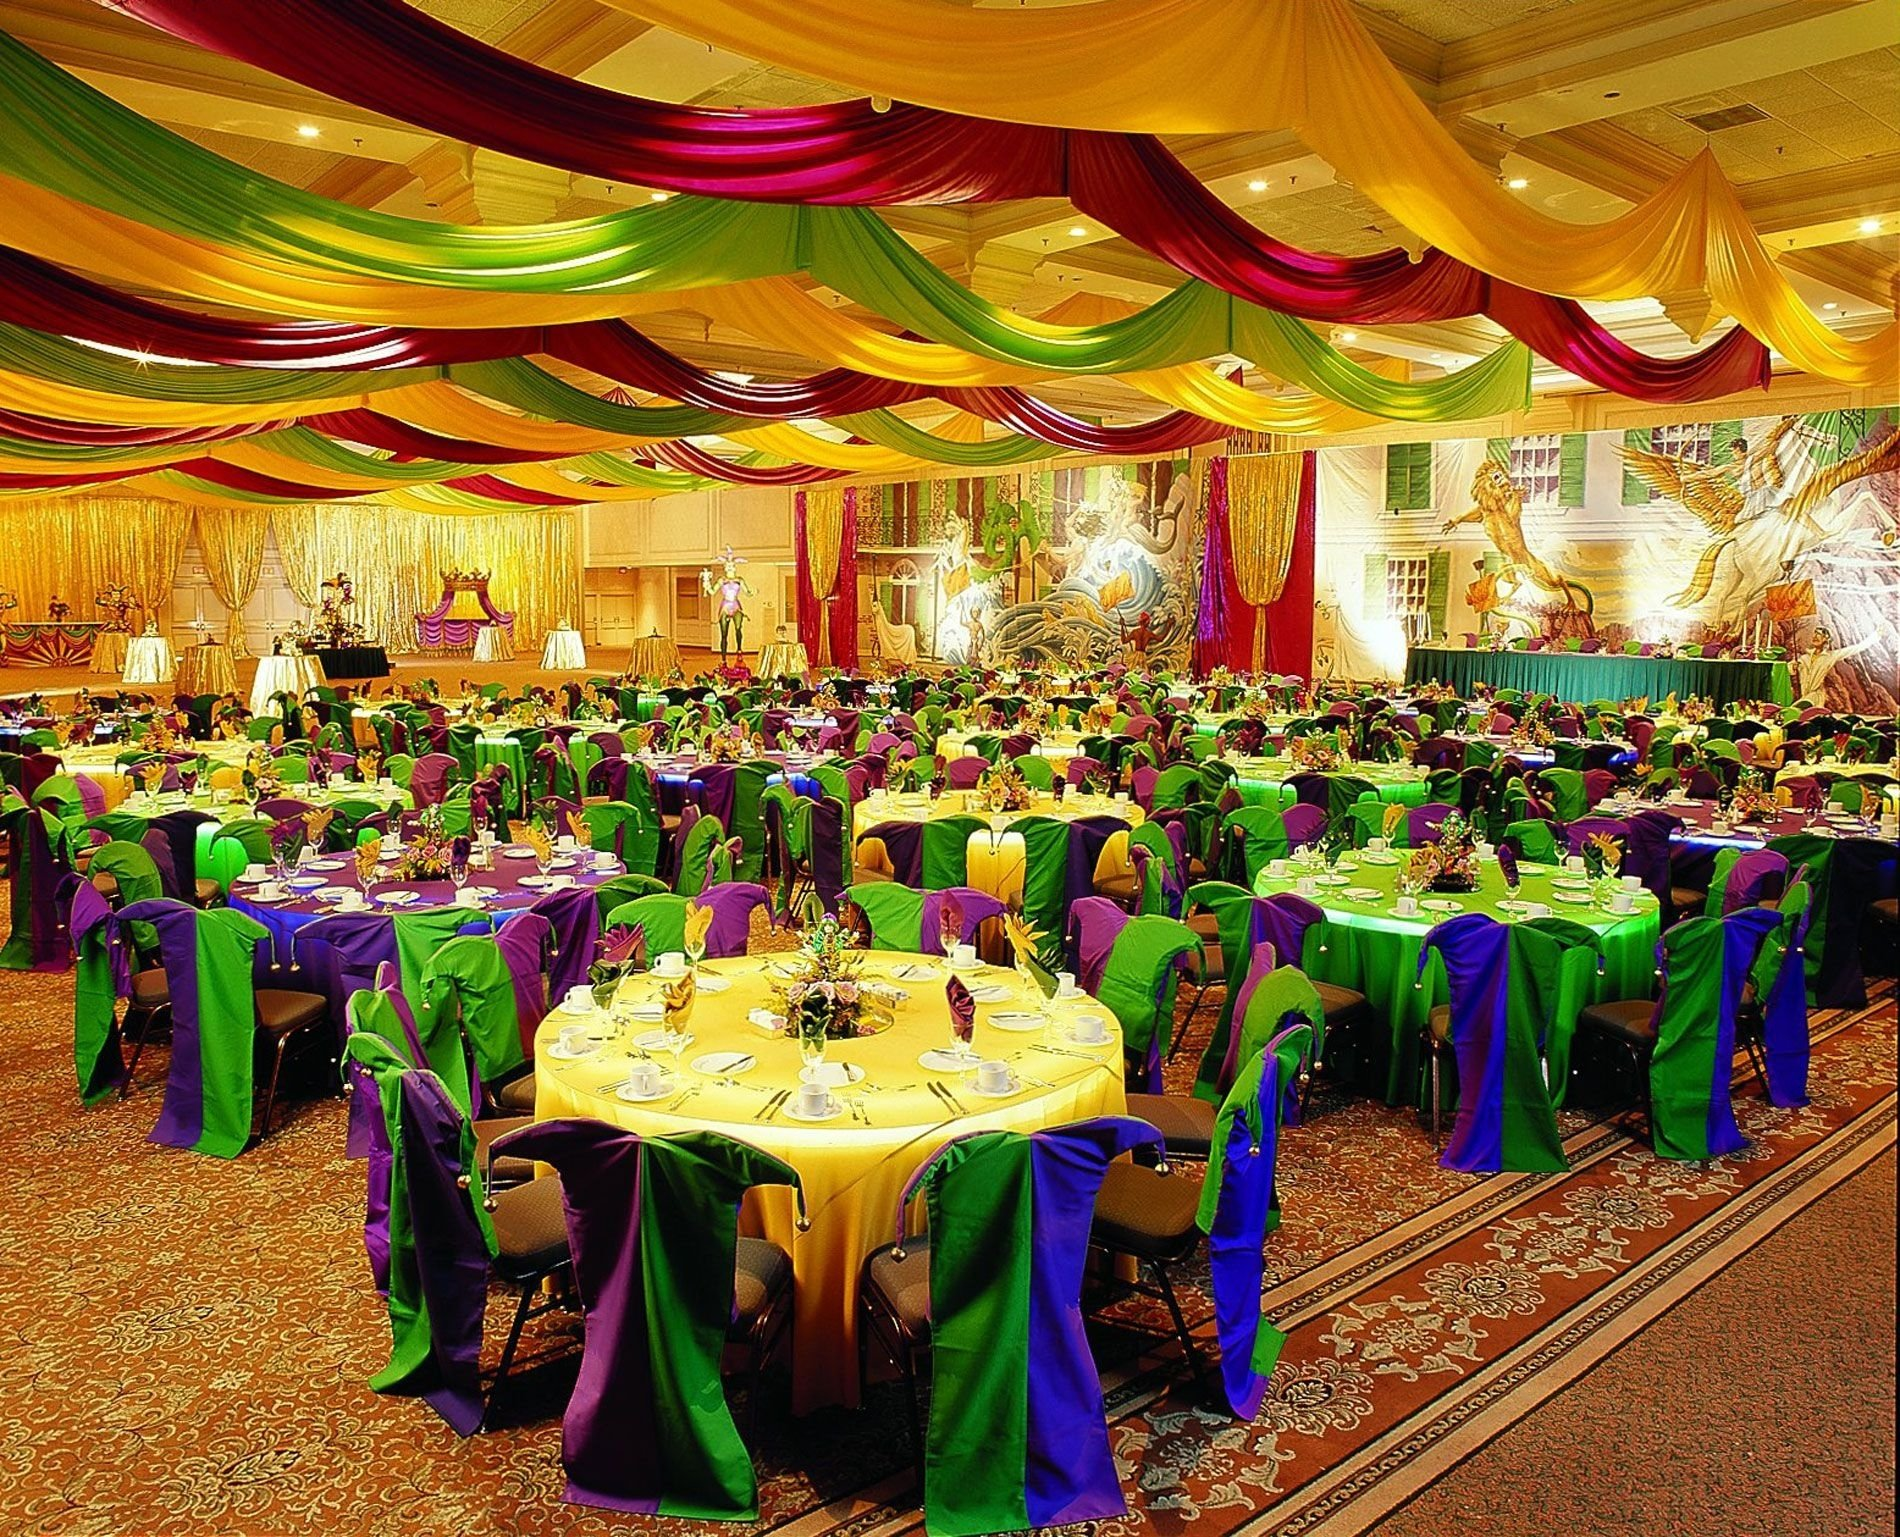 10 Most Recommended Mardi Gras Ideas For A Party mardi gras wedding table decorations mardi gras producitons 1 2020